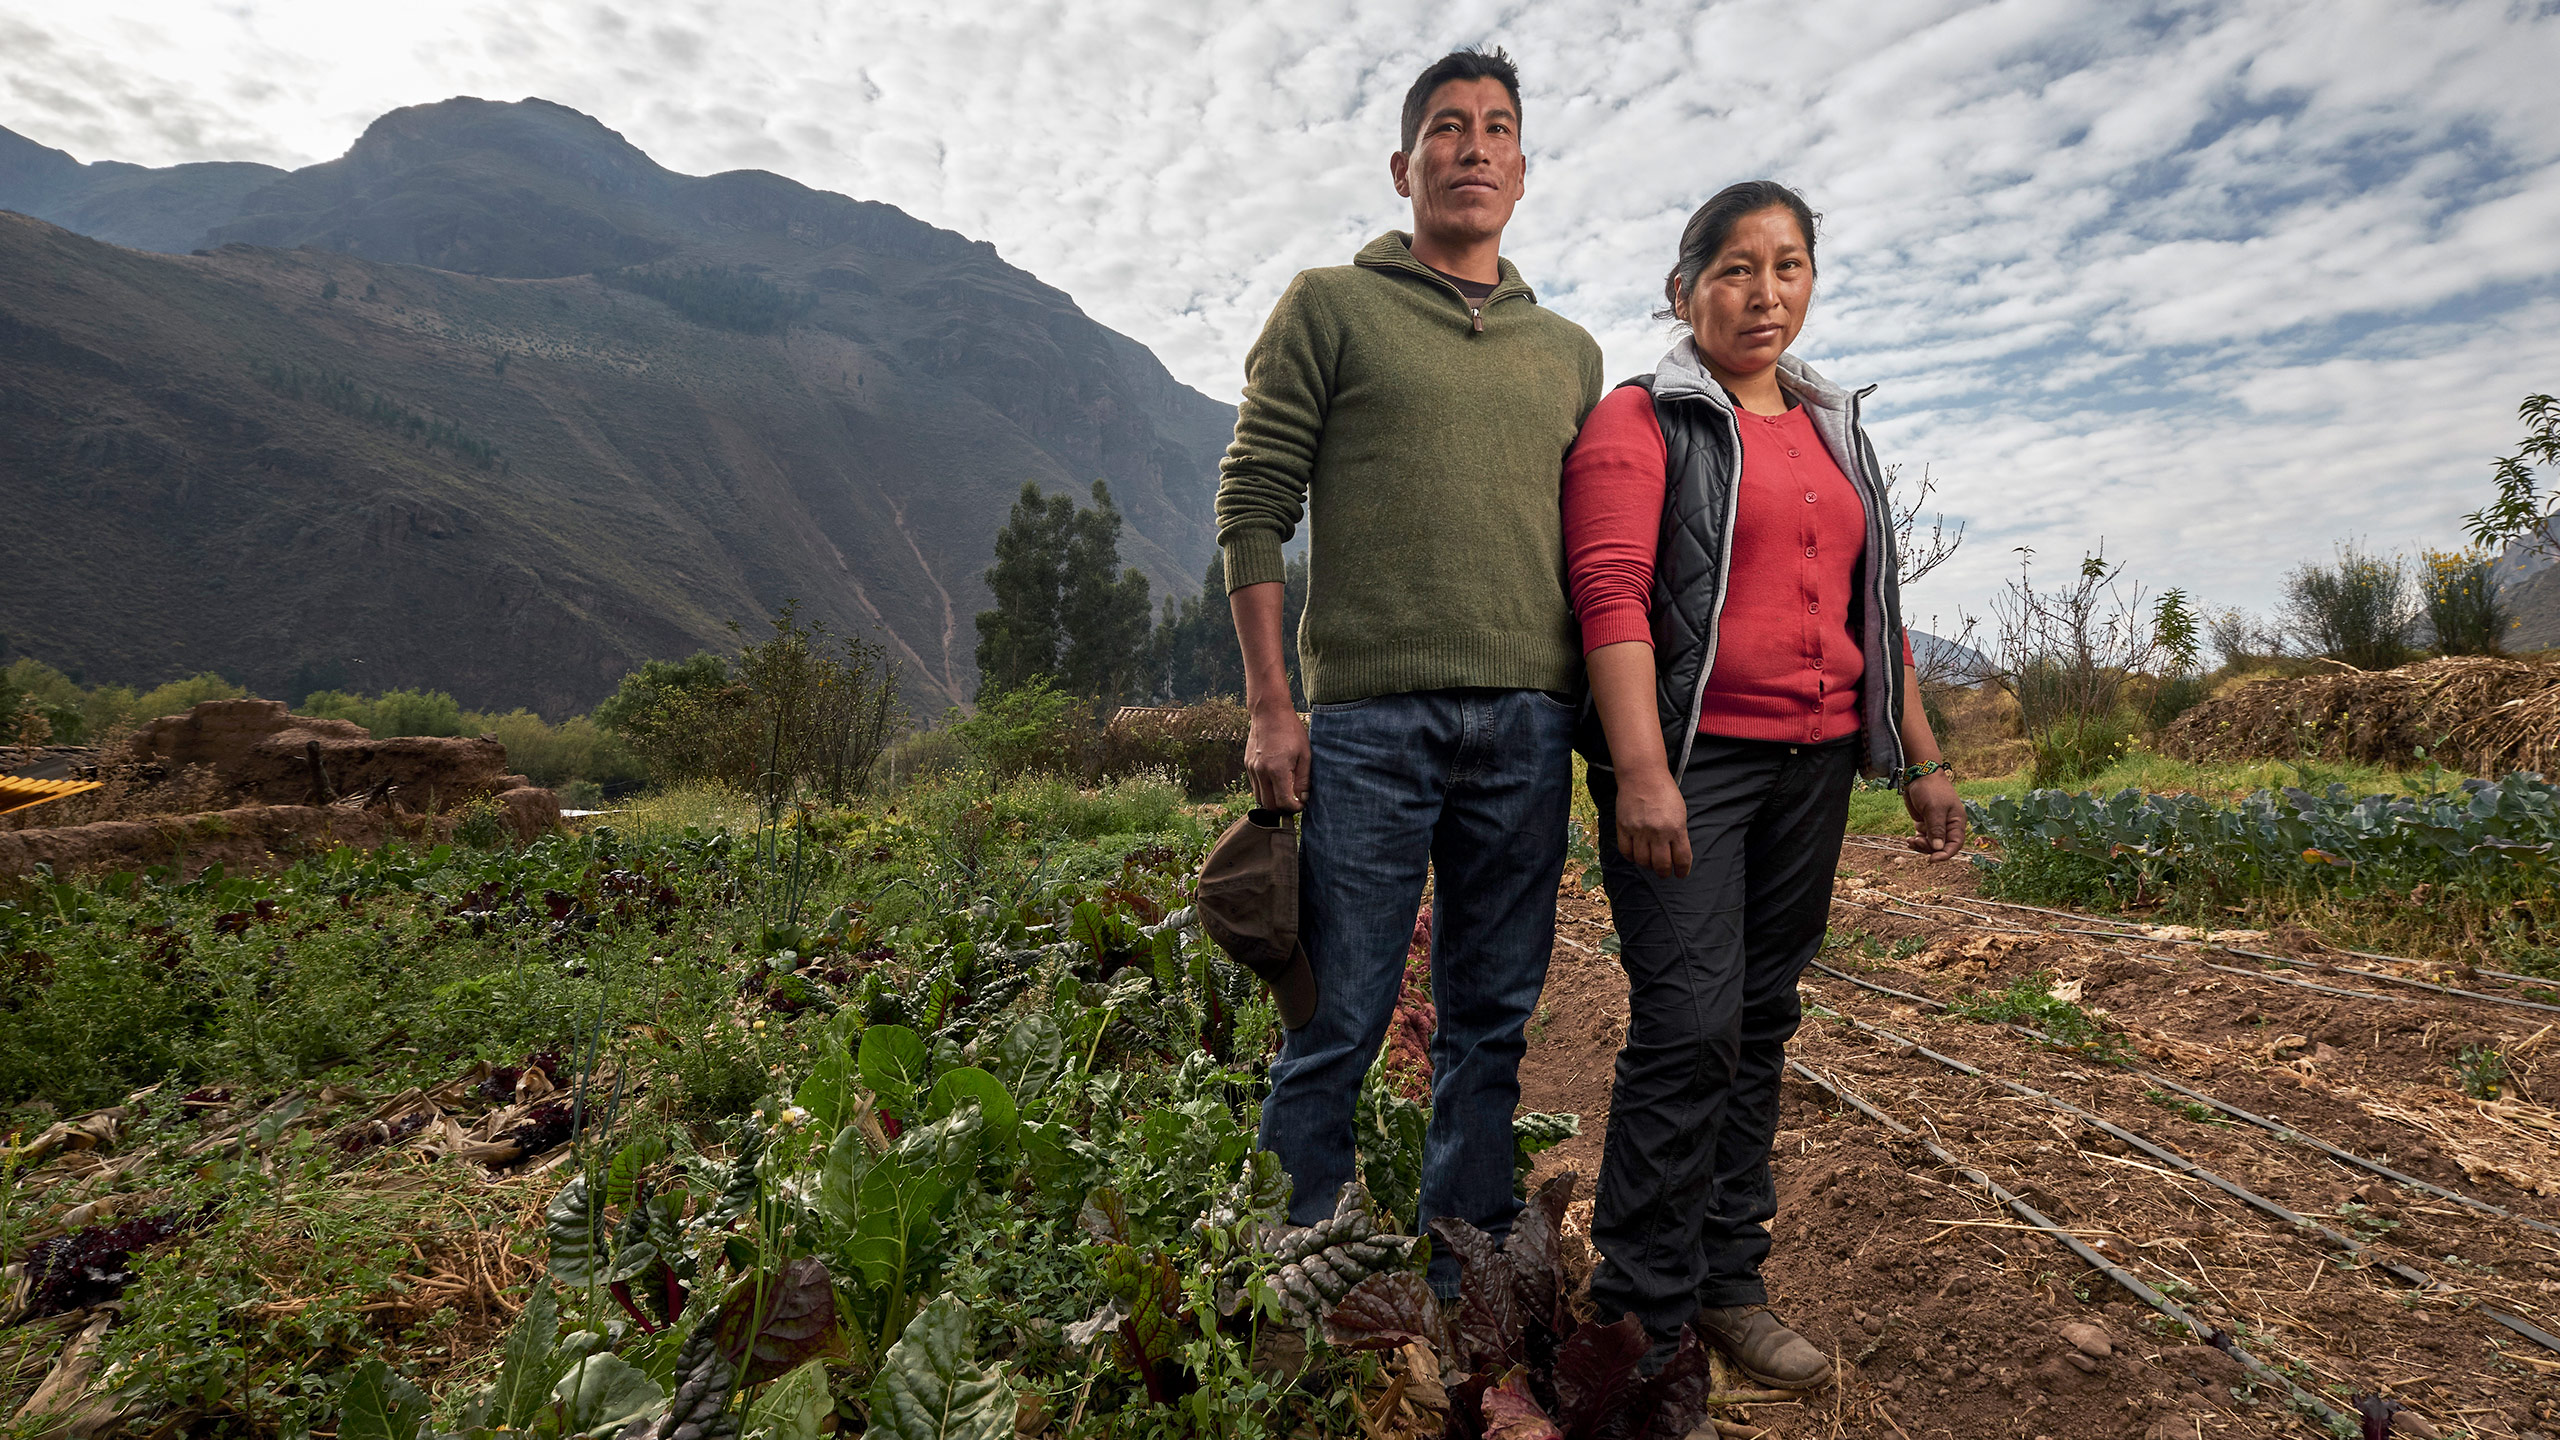 Julio Cesar Nina and Yésica Cusiyupanqui had seen numerous NGOs come and go in their native Peru. What they've experienced with the Andean Alliance is a different story.